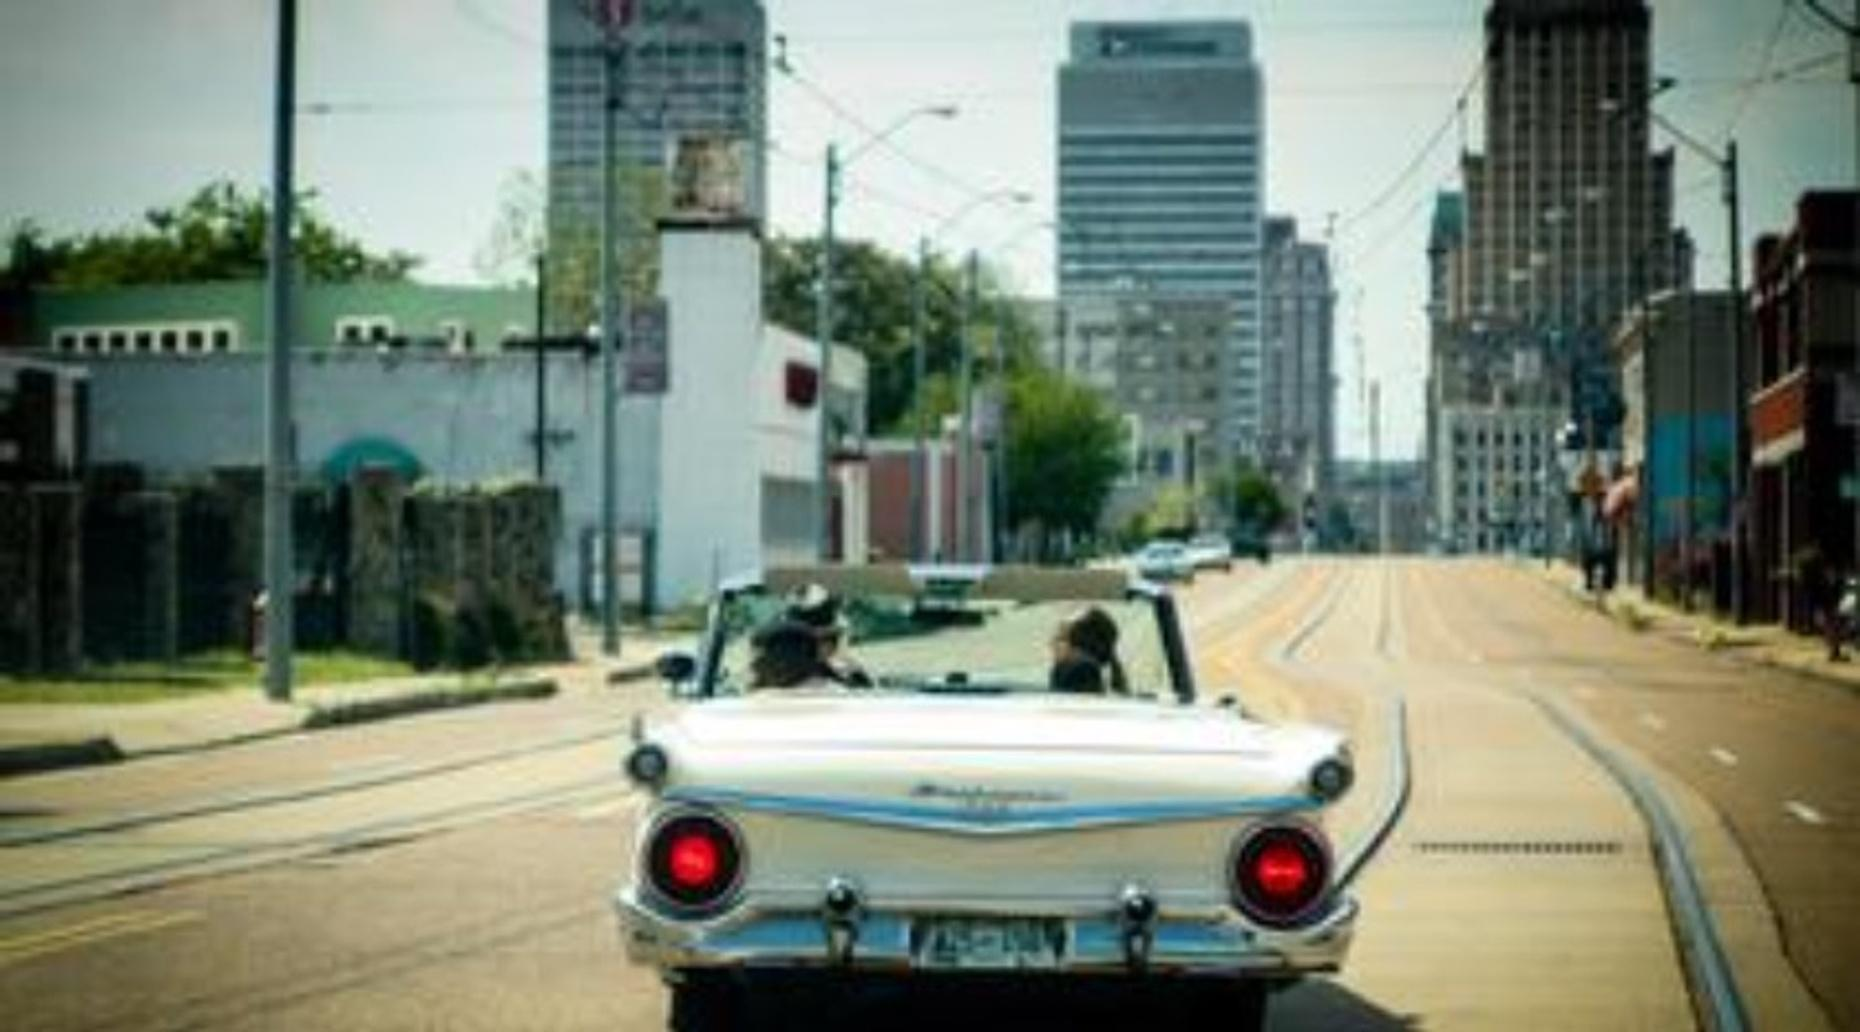 Elvis-Themed Tour of Memphis in a 1955 Chevy Bel Air